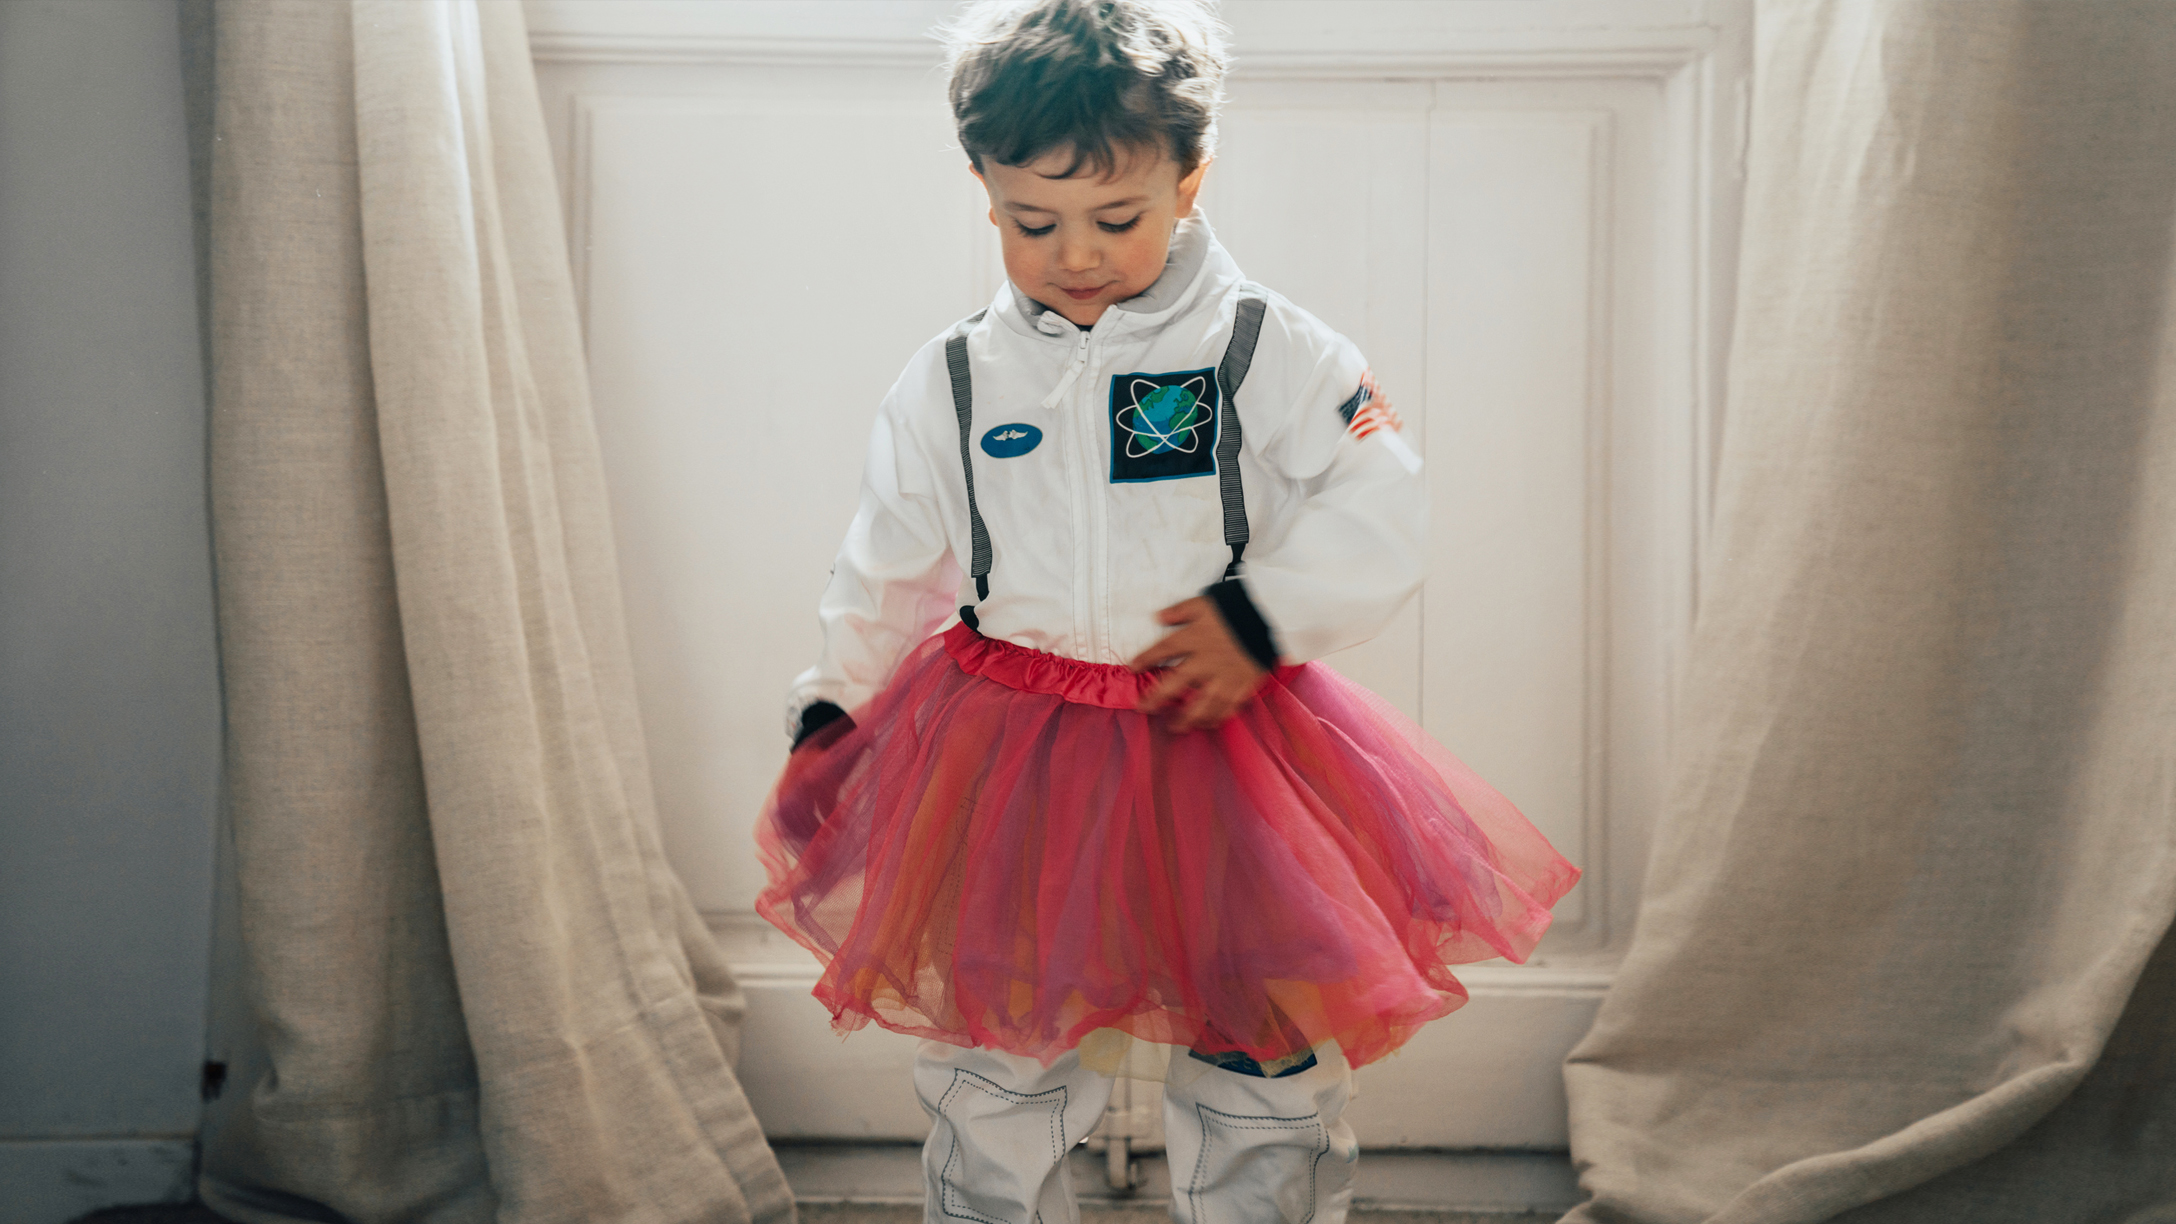 Let's Normalize Boys Wearing Dresses